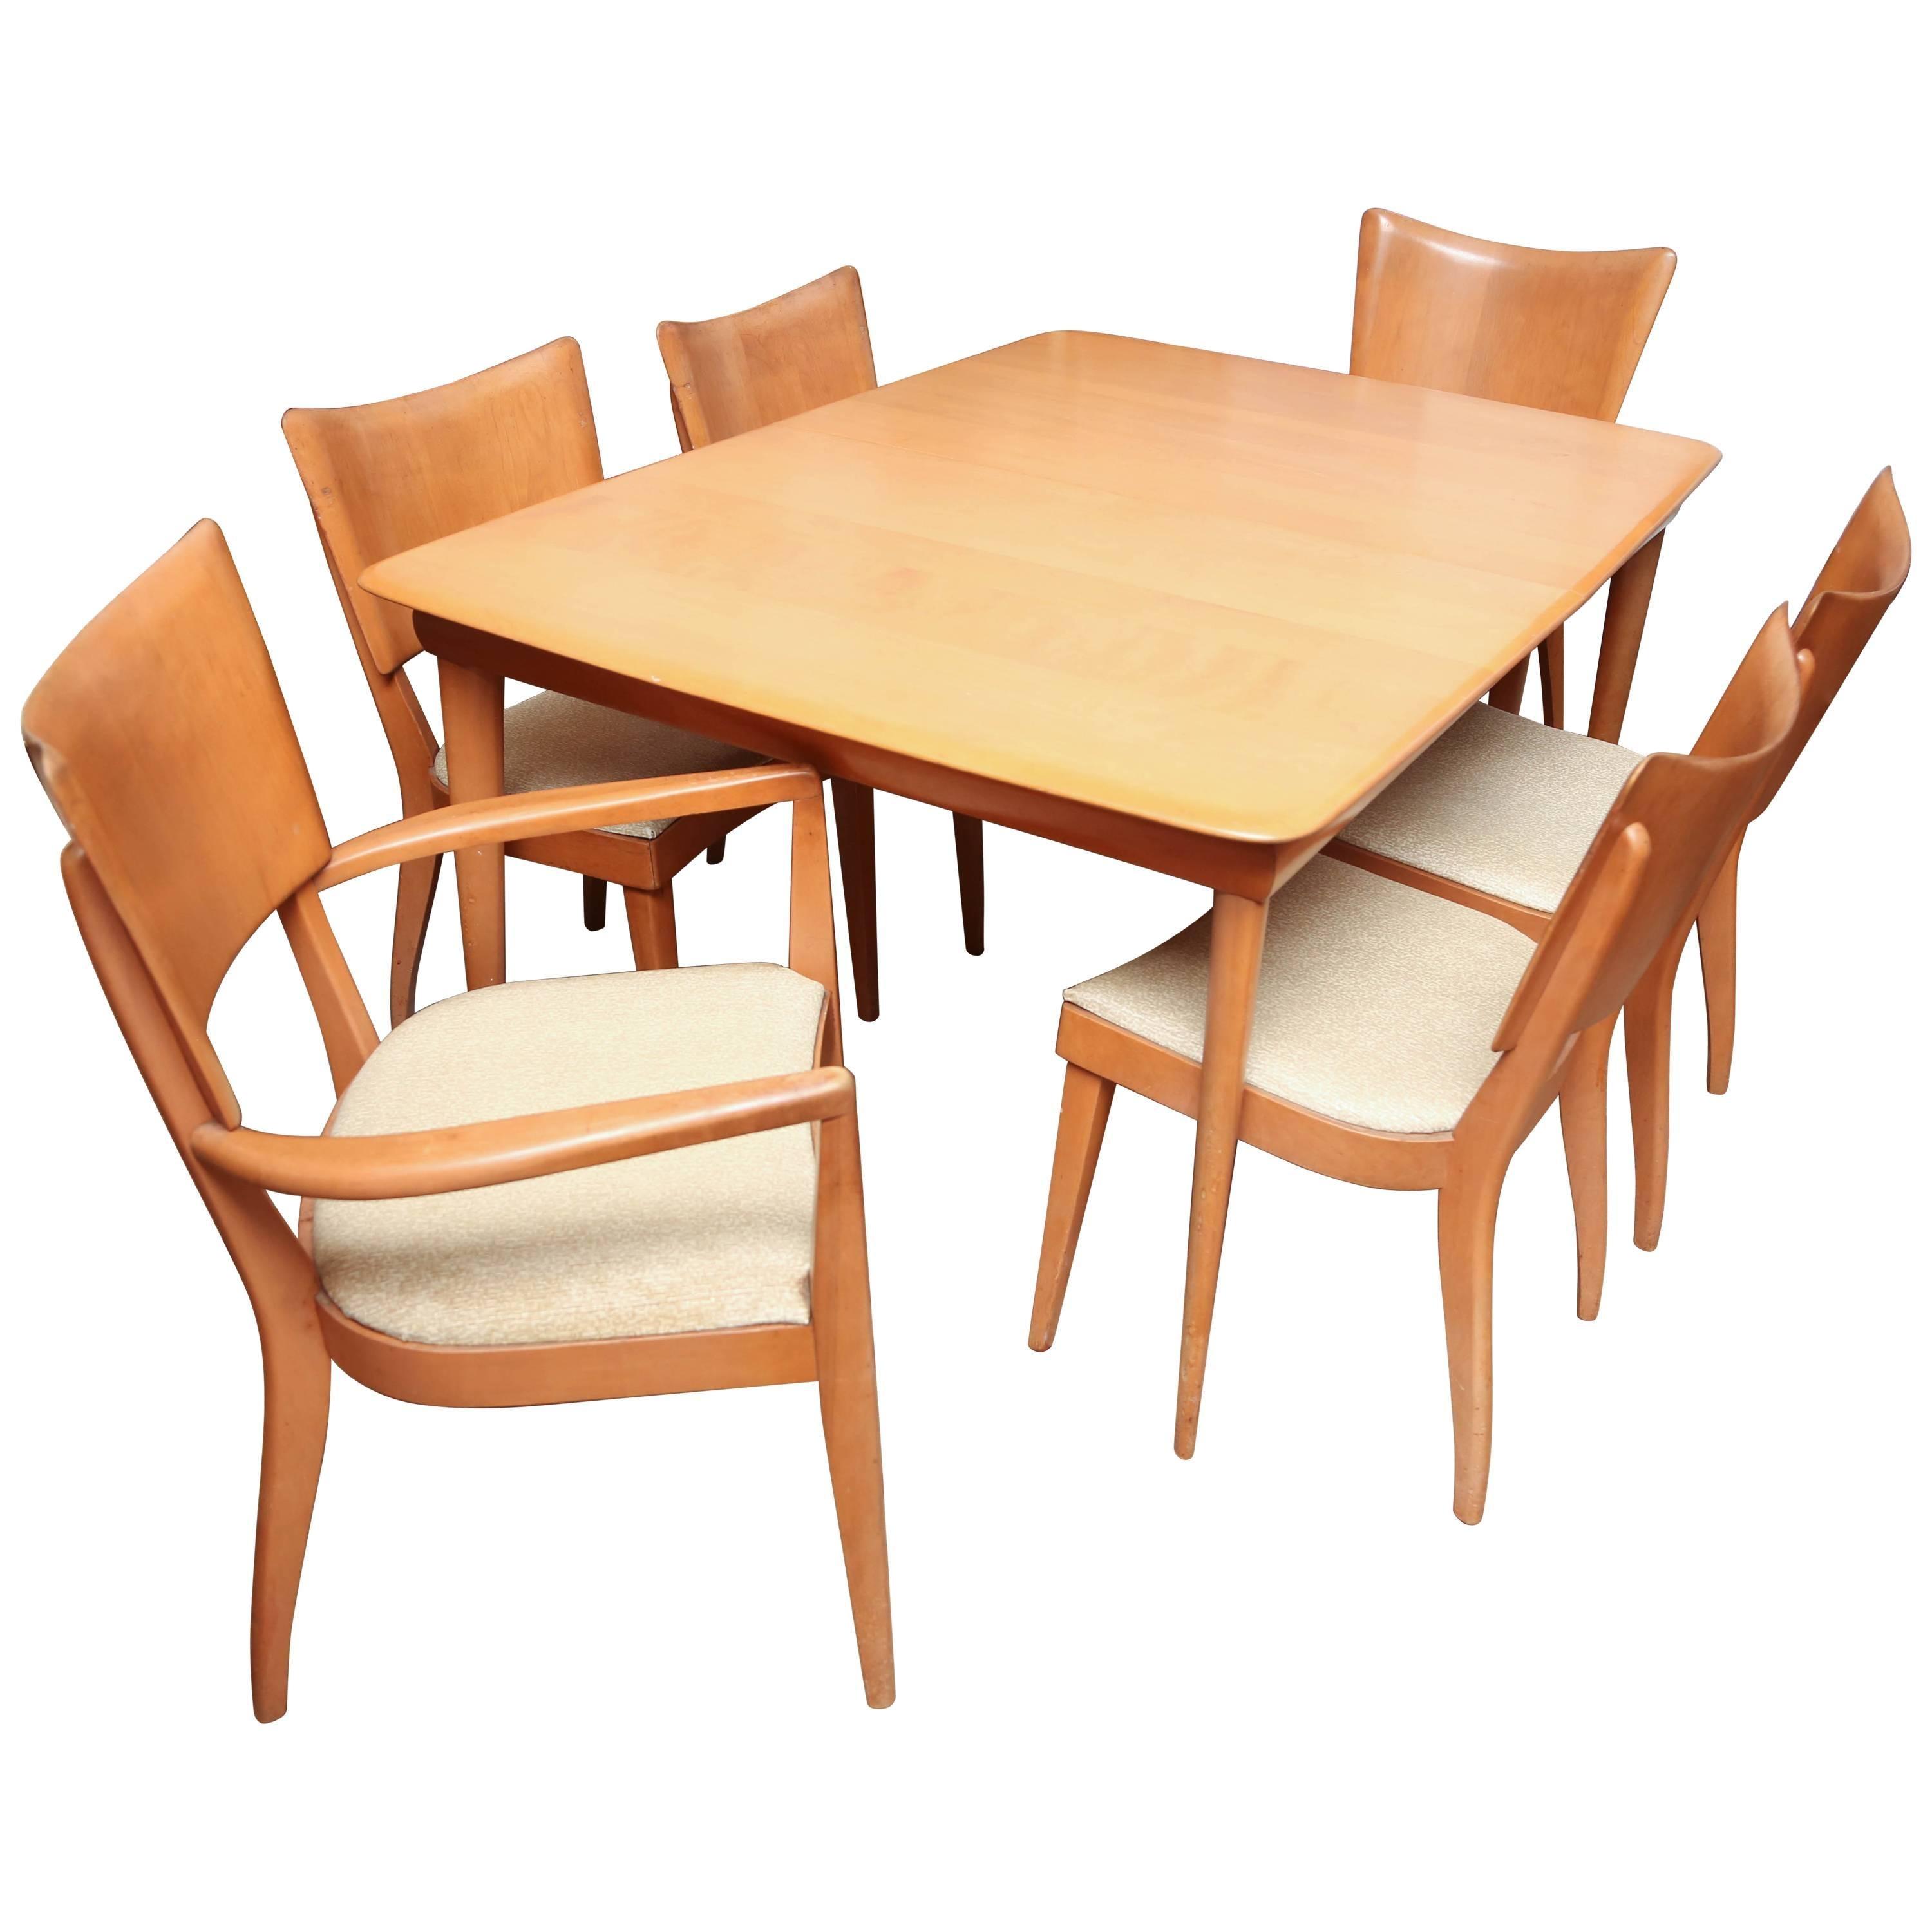 Heywood Wakefield Dining Room Set With Six Chairs, 1960s, USA